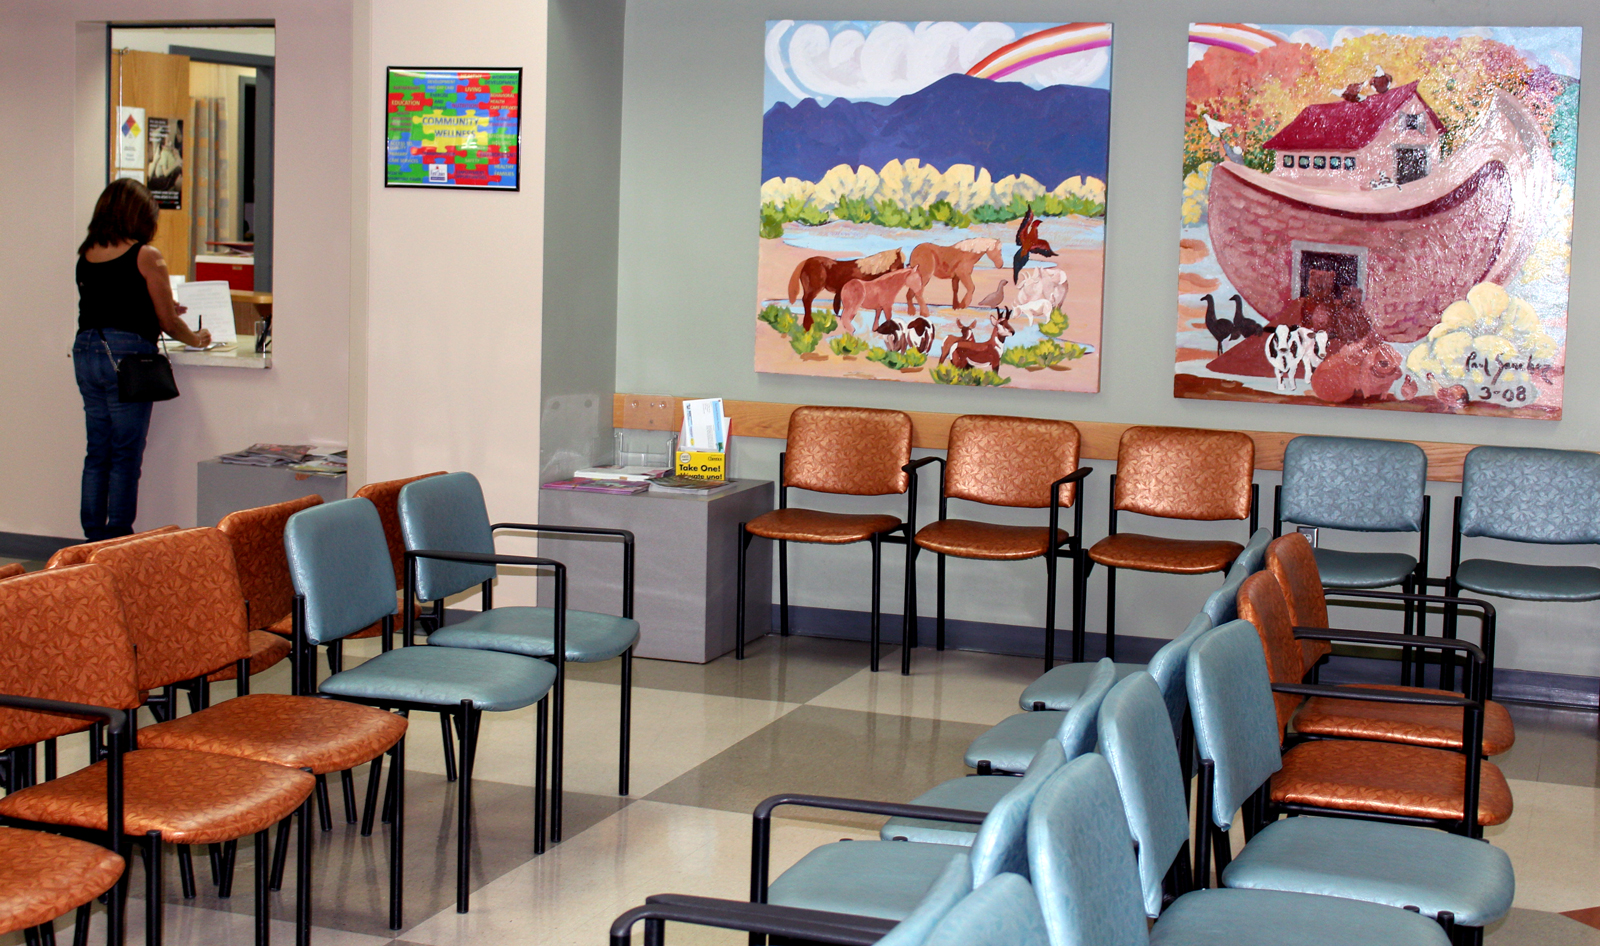 First Choice South Valley Medical Center, a federally qualified health center.